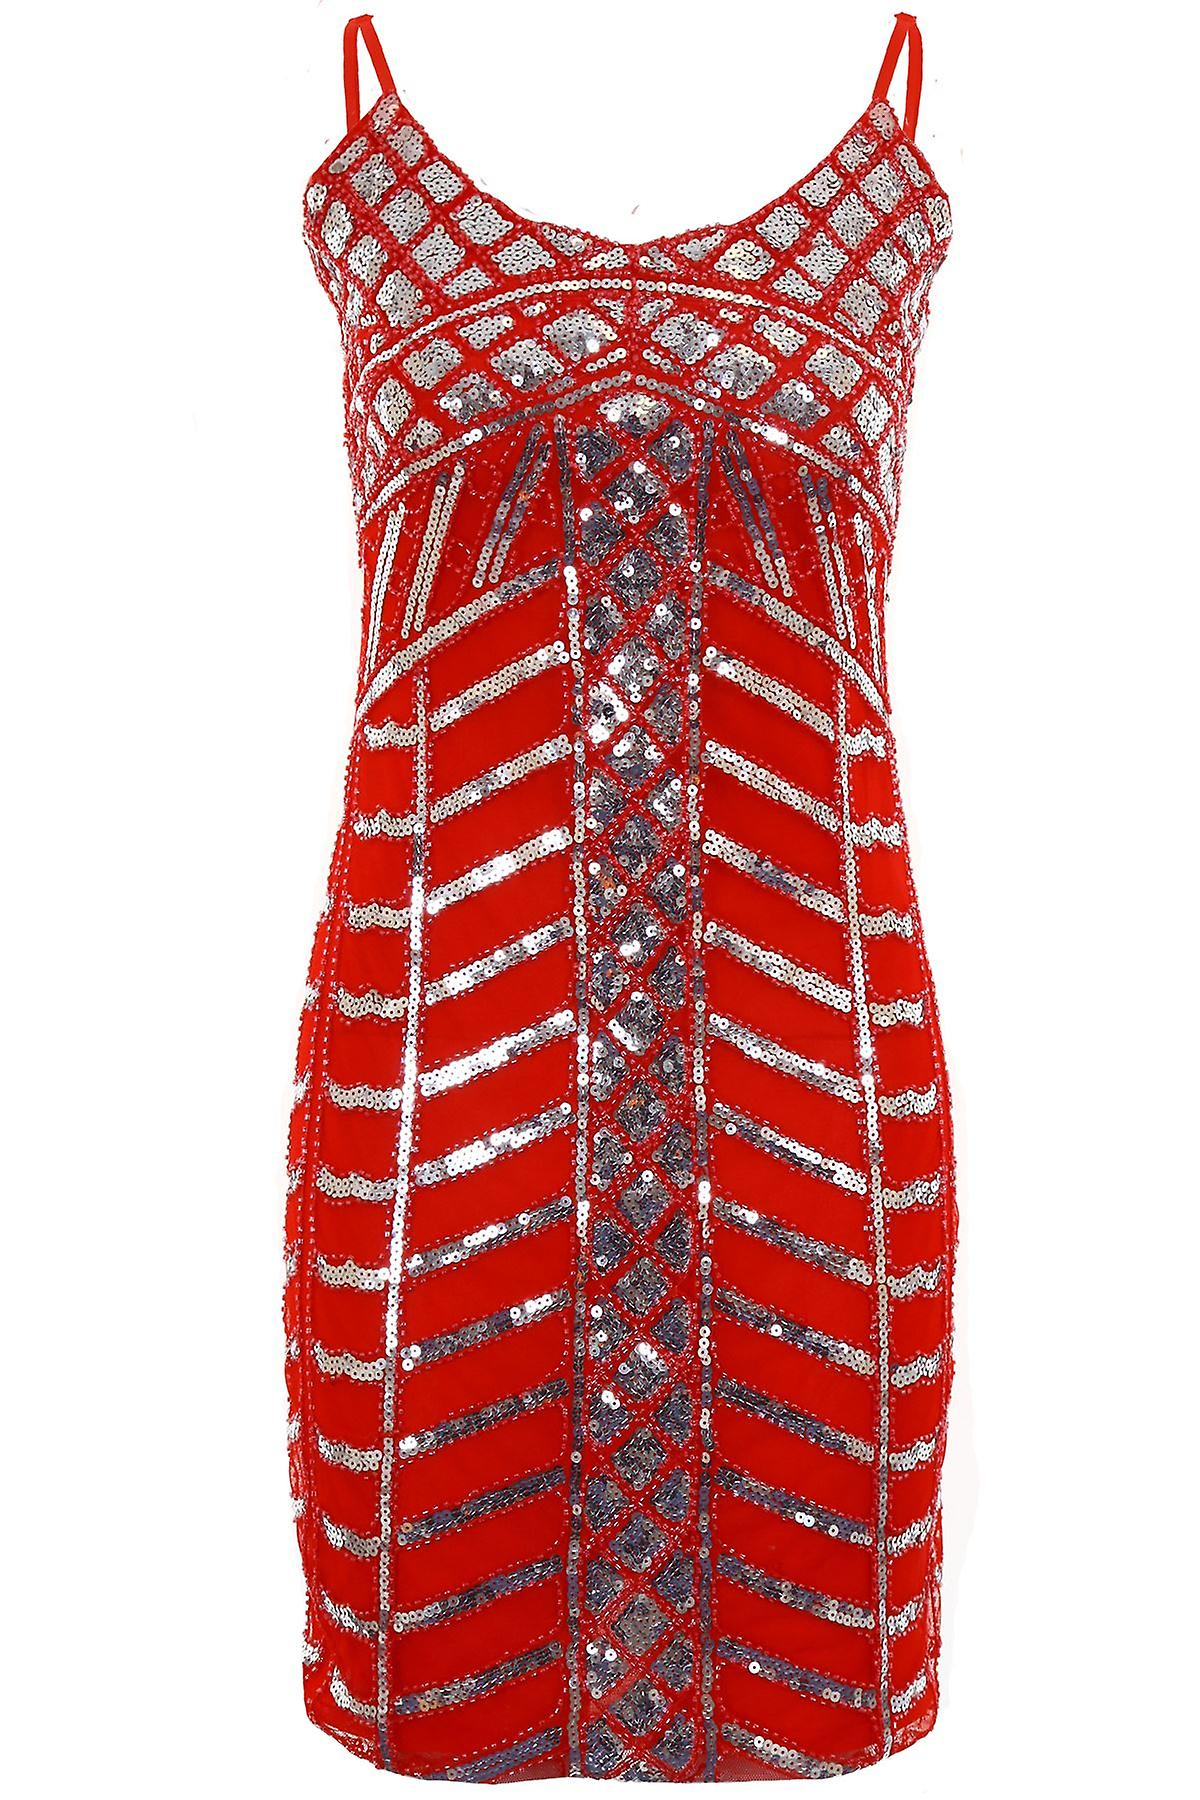 Ladies Adjustable Strap Cami Sequin Mesh Contrast Women's Lined Bodycon Dress